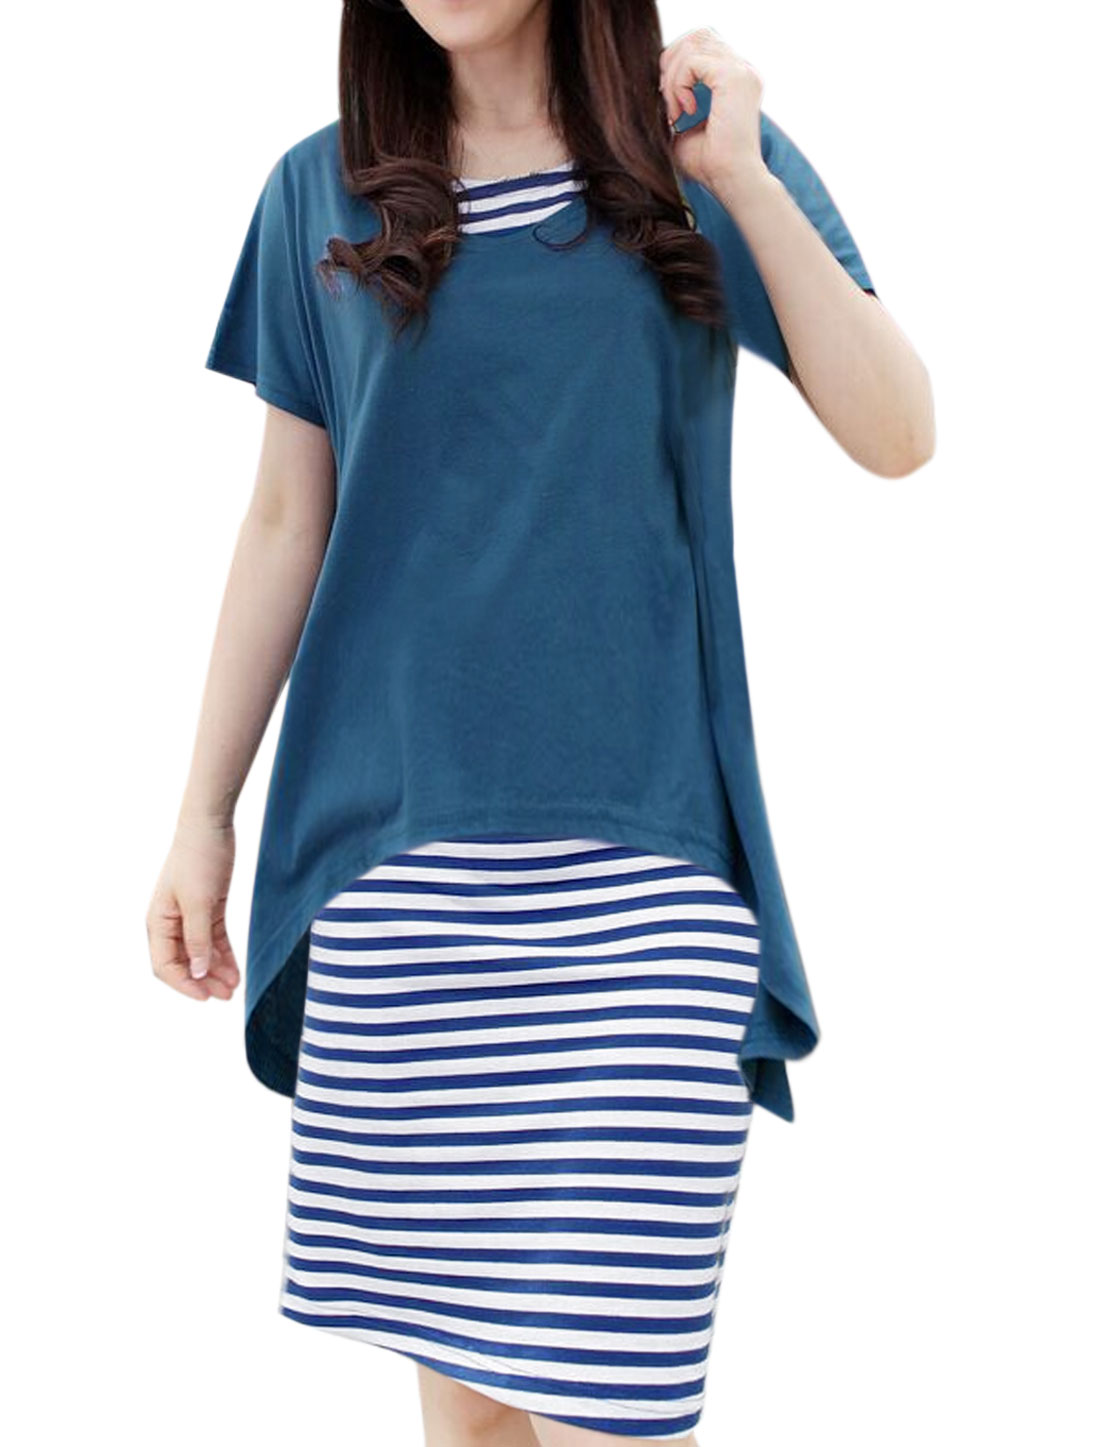 Woman Low High Hem Loose Top w Stripes Midi Dress Sets Blue White M